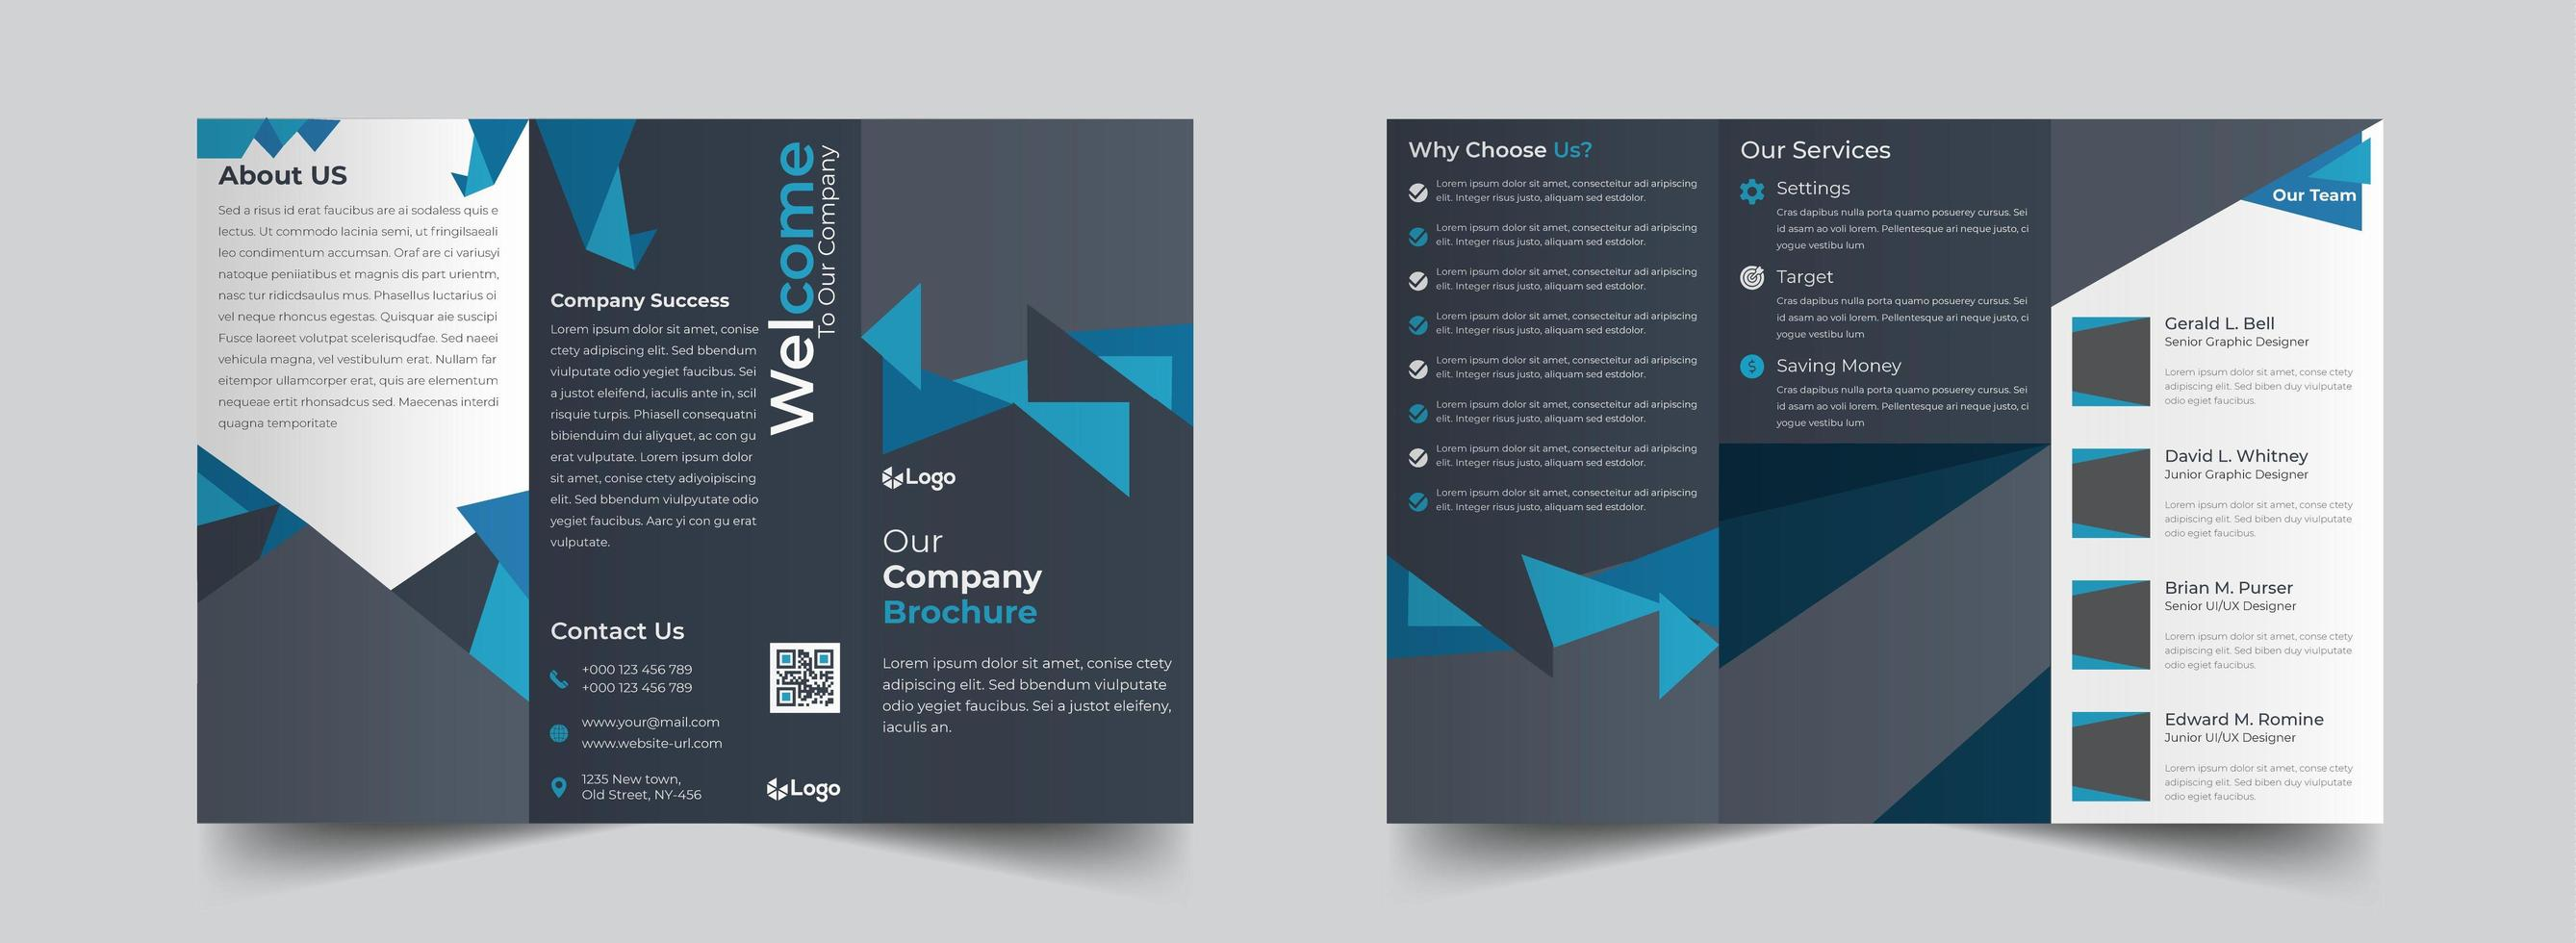 Blue and grey triangular shapes corporate trifold brochure template  vector